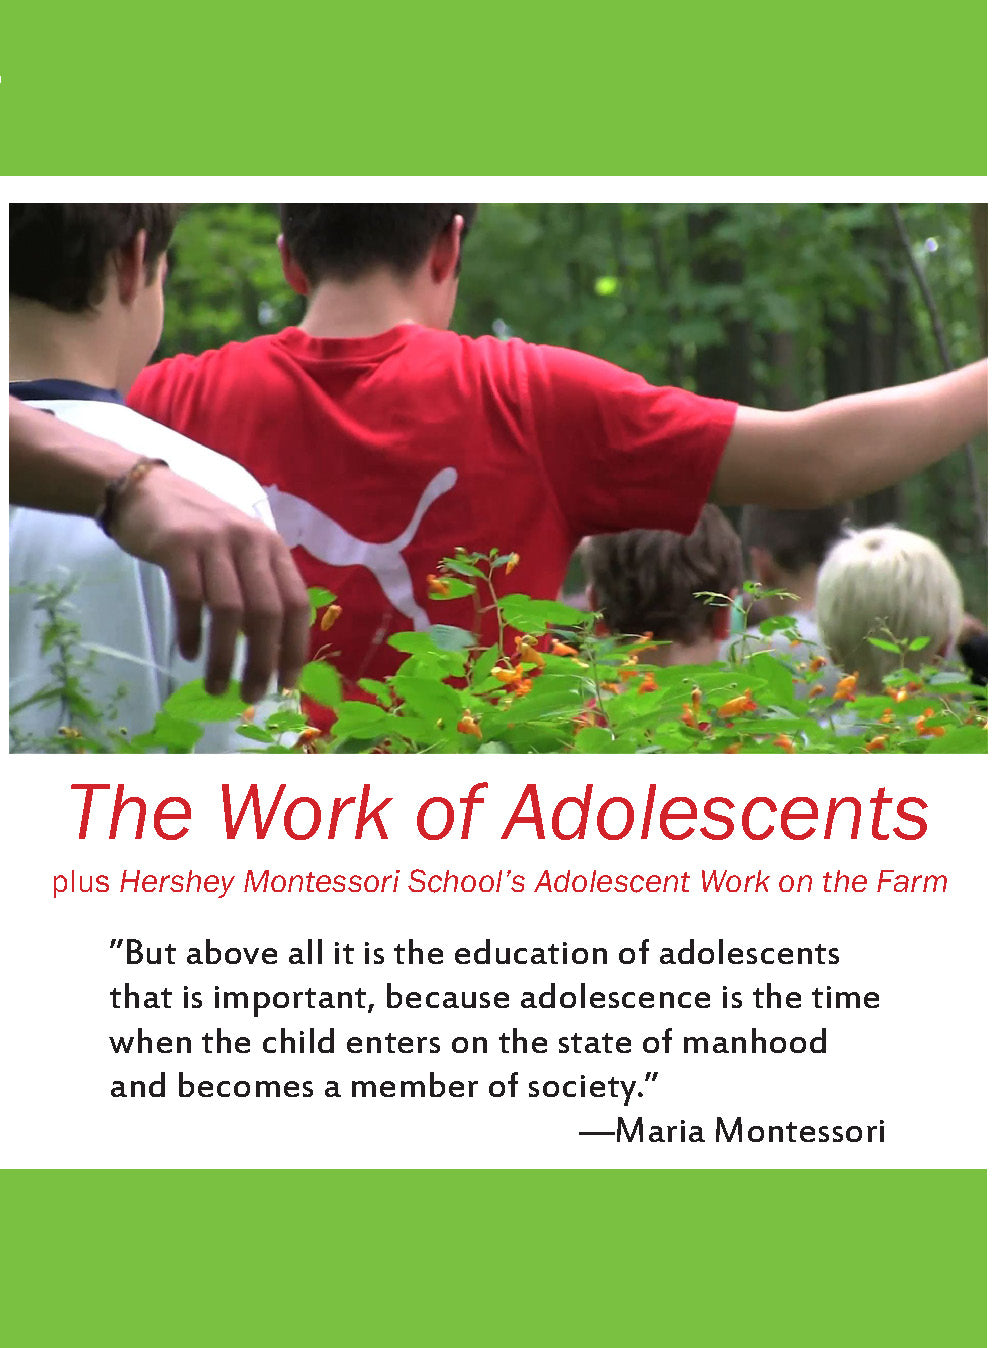 The Work of Adolescents